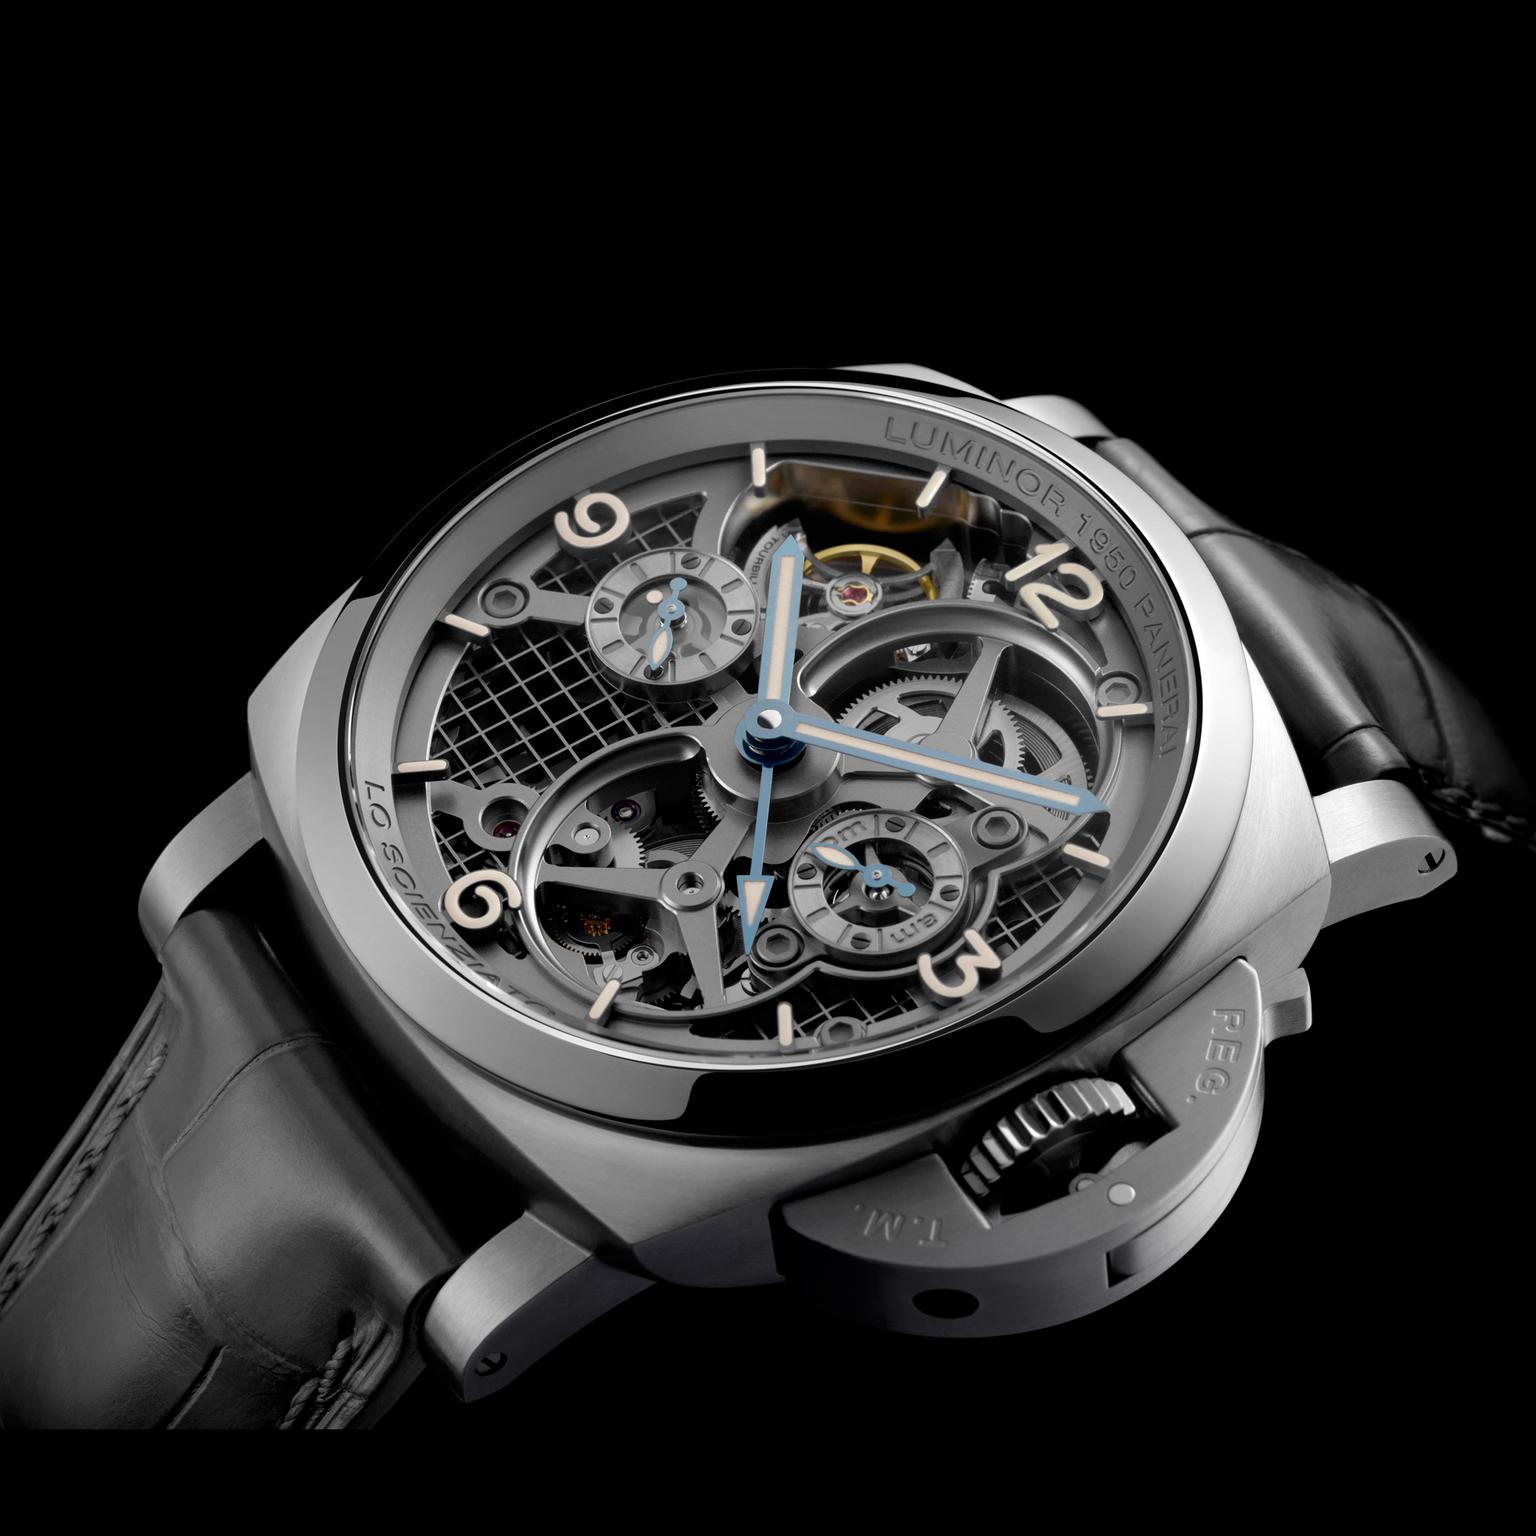 Panerai Lo Scienziato watch - black background